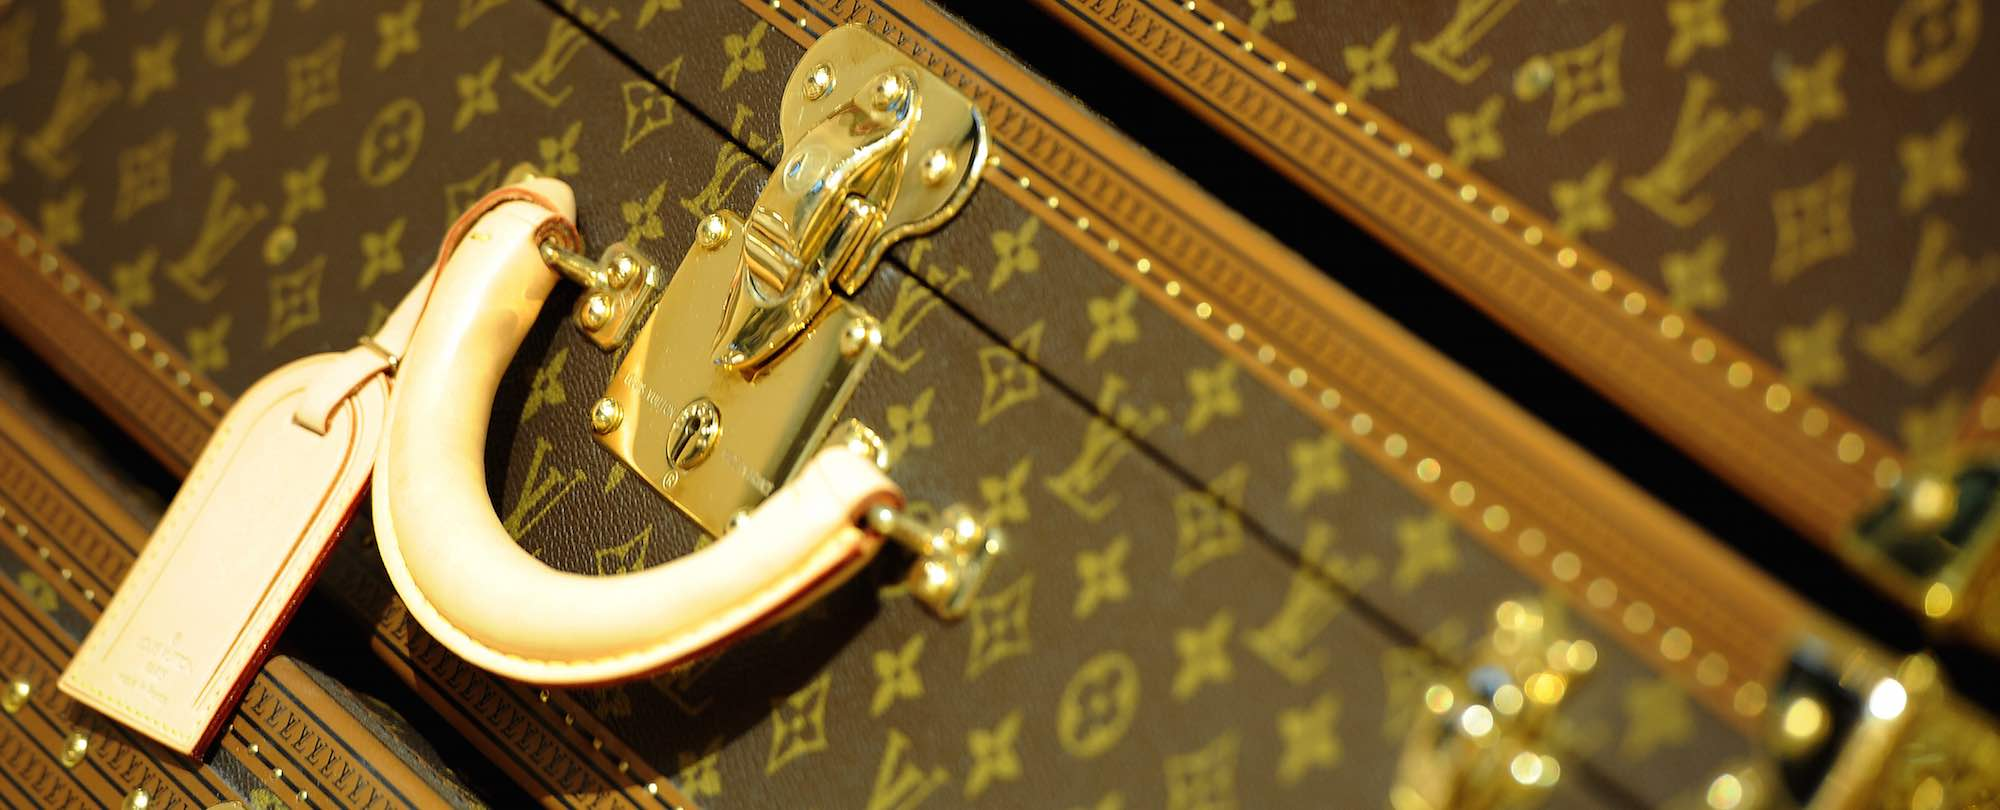 luxurious goods louis vuitton moet hennessey essay Louis vuitton moet hennessy write up lvmh's diversification represents the group's strong presence in the luxury goods market as a all lvmh pest essays.